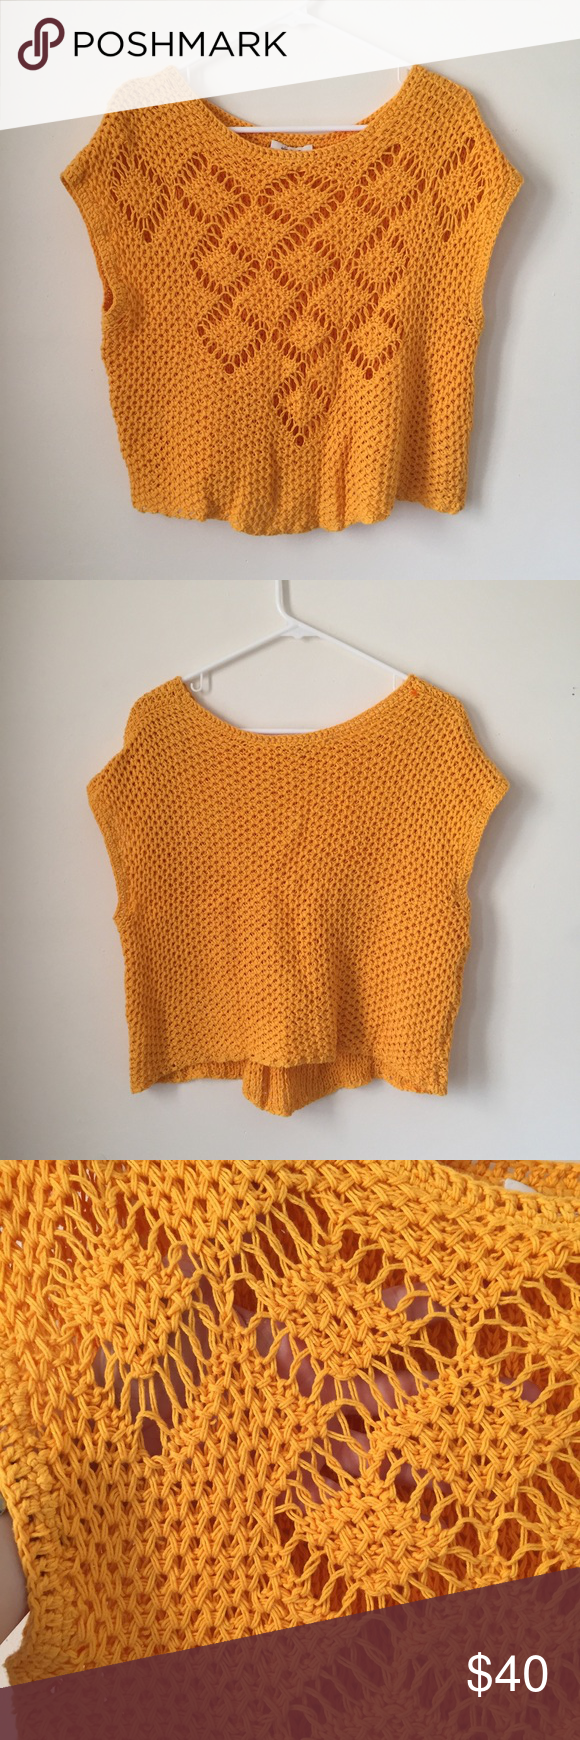 Ella Moss Whitney Pointelle Sweater Small Bohemian chic sweater from Ella Moss in bright, beautiful marigold. Slightly cropped. Textured, loose knit pullover. Round neckline. Size small. Excellent condition. Mark through Label to prevent returns. Ella Moss Sweaters Crew & Scoop Necks